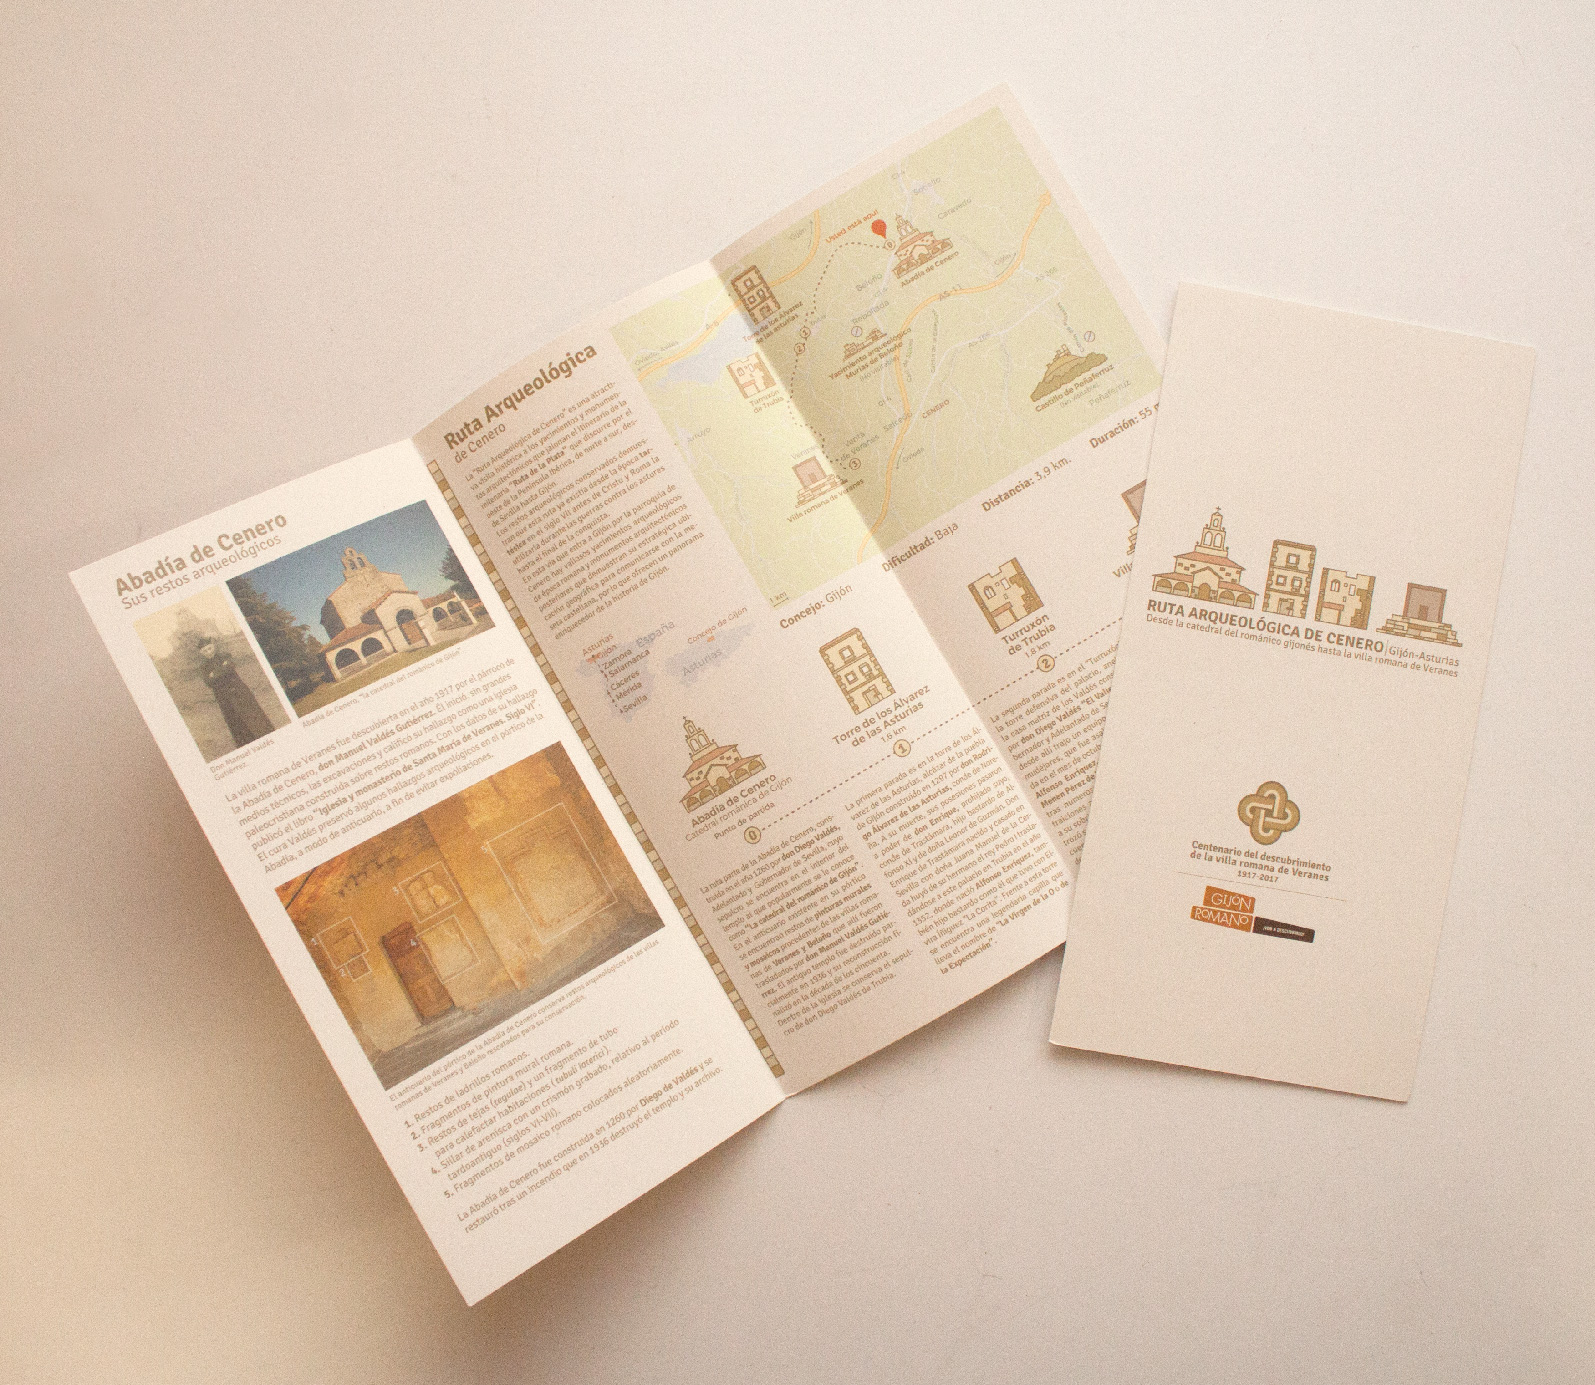 Customized trifold brochure to show the essential information about the roman ruins of Veranes.